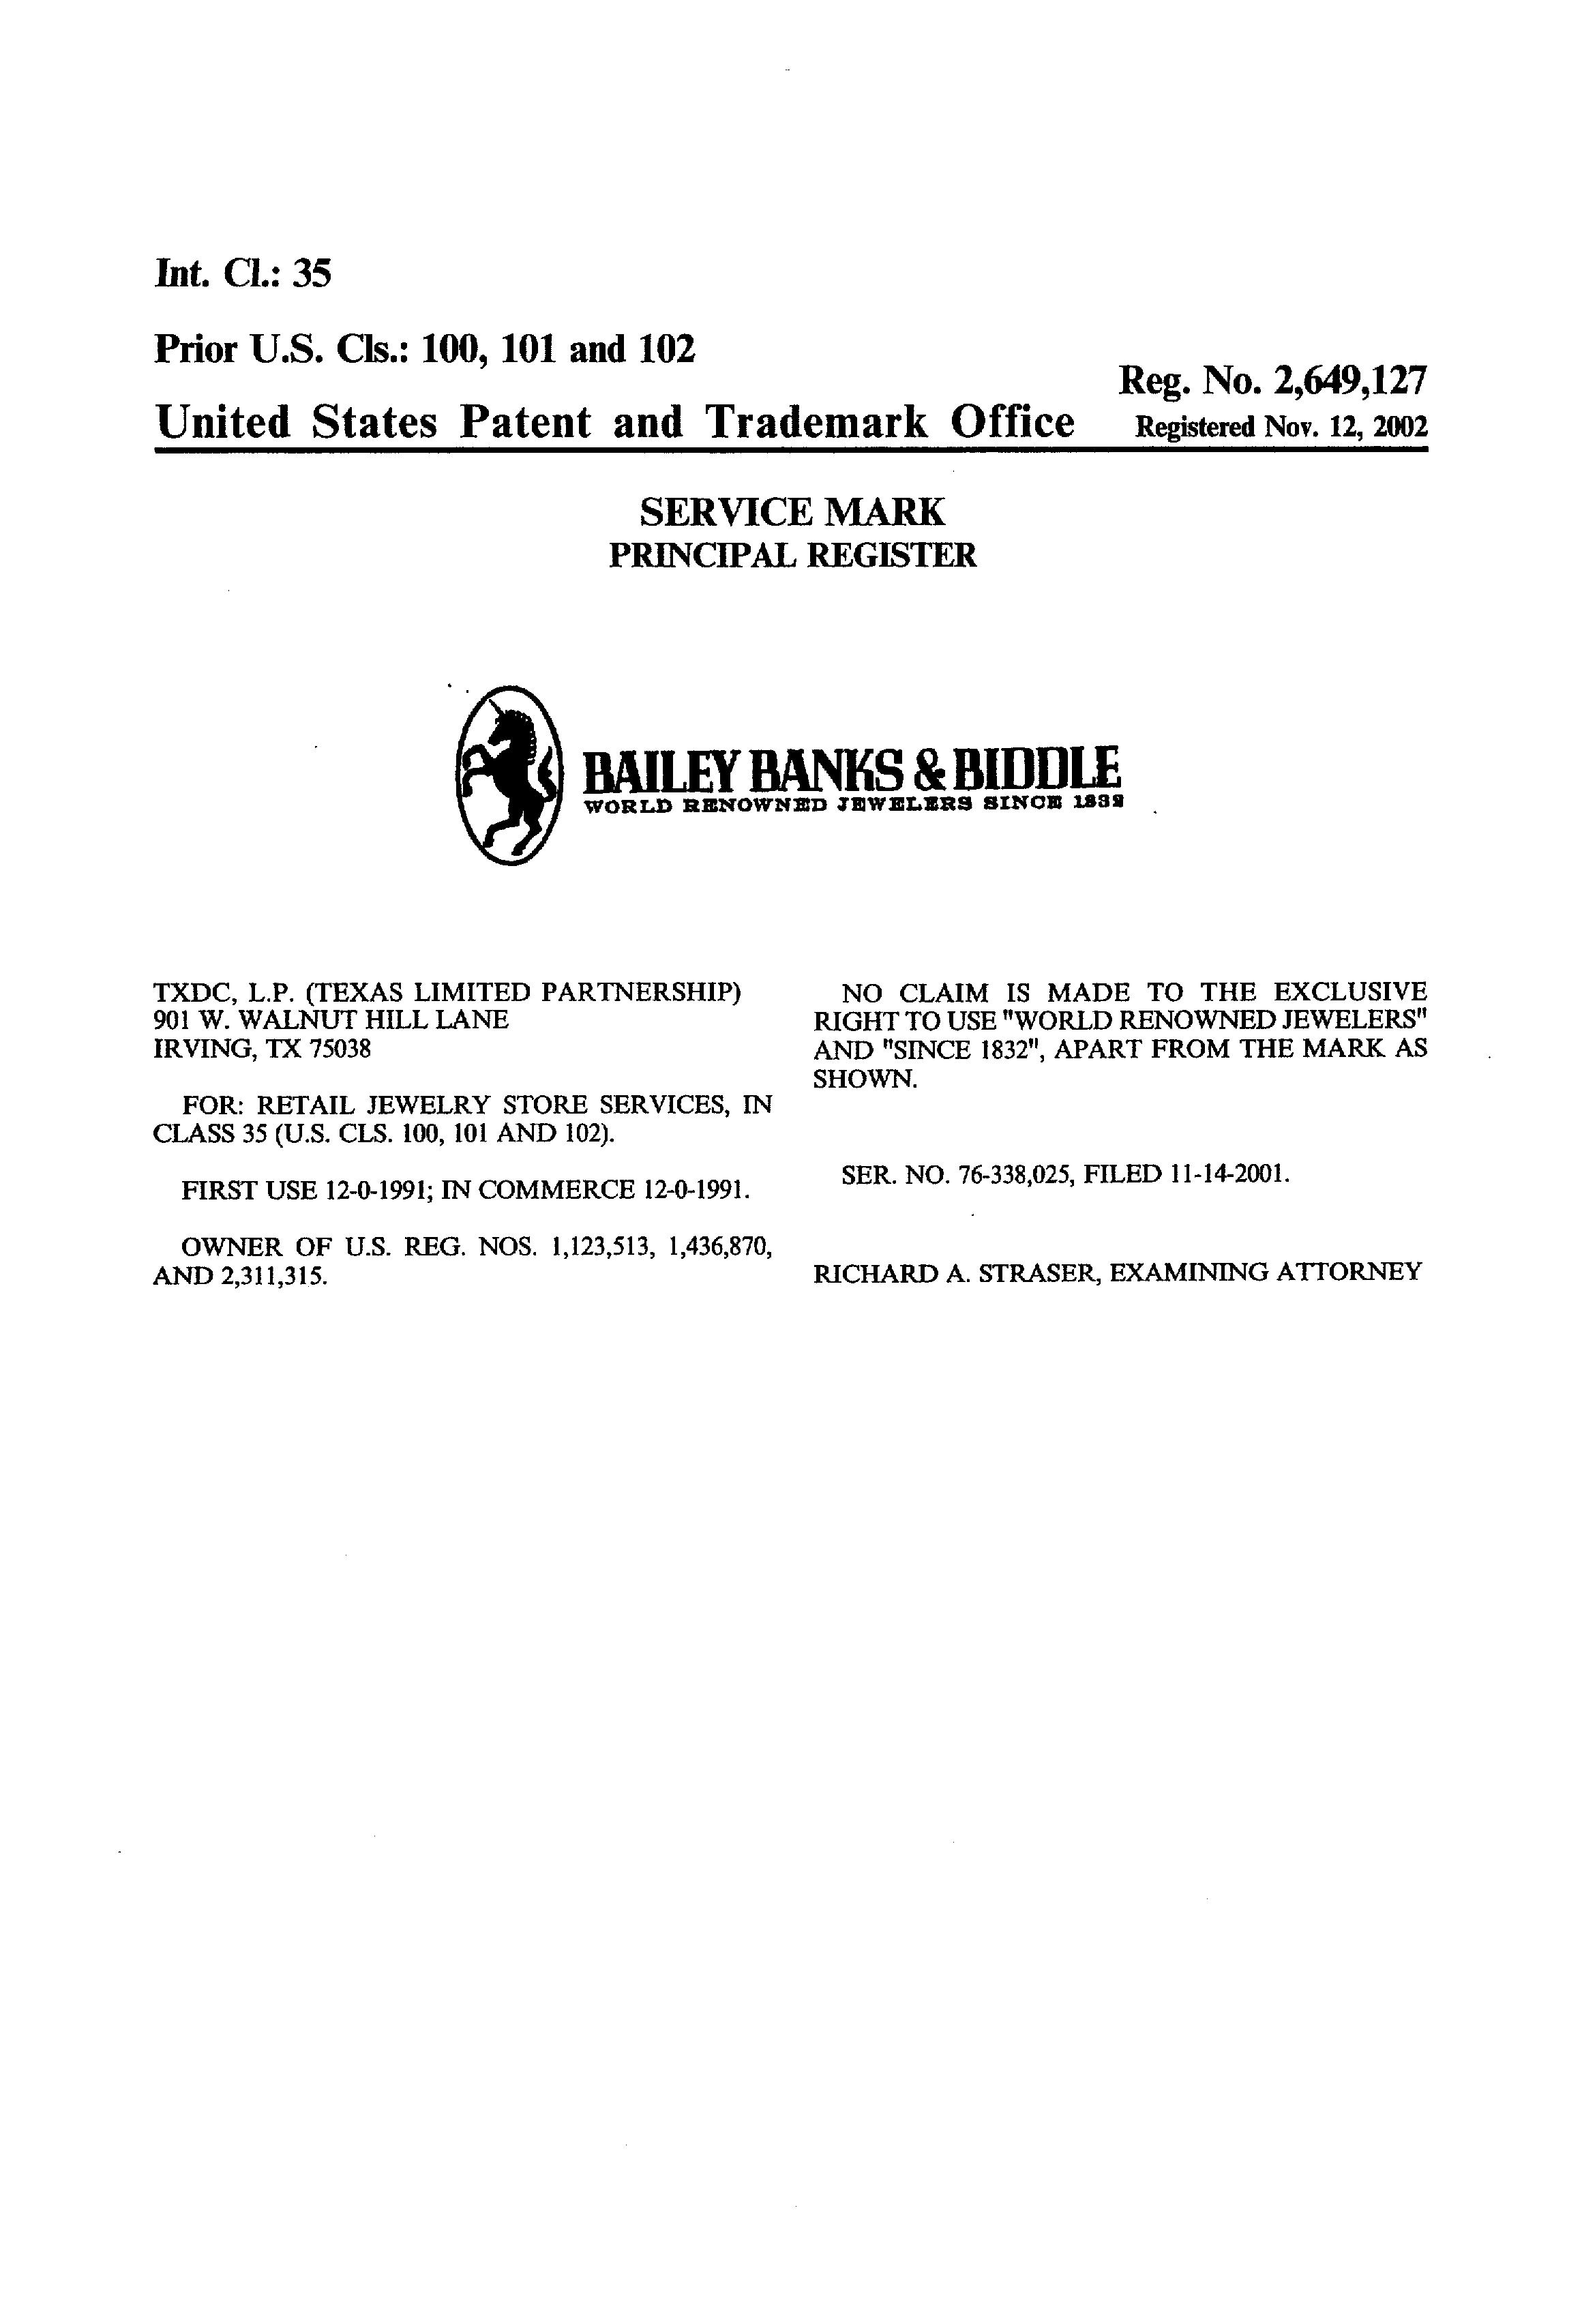 Bailey Banks Biddle World Renowned Jewelers Since 1832 Details A Report By Trademark Bank Calendar Your Mark Monitor Similar Marks